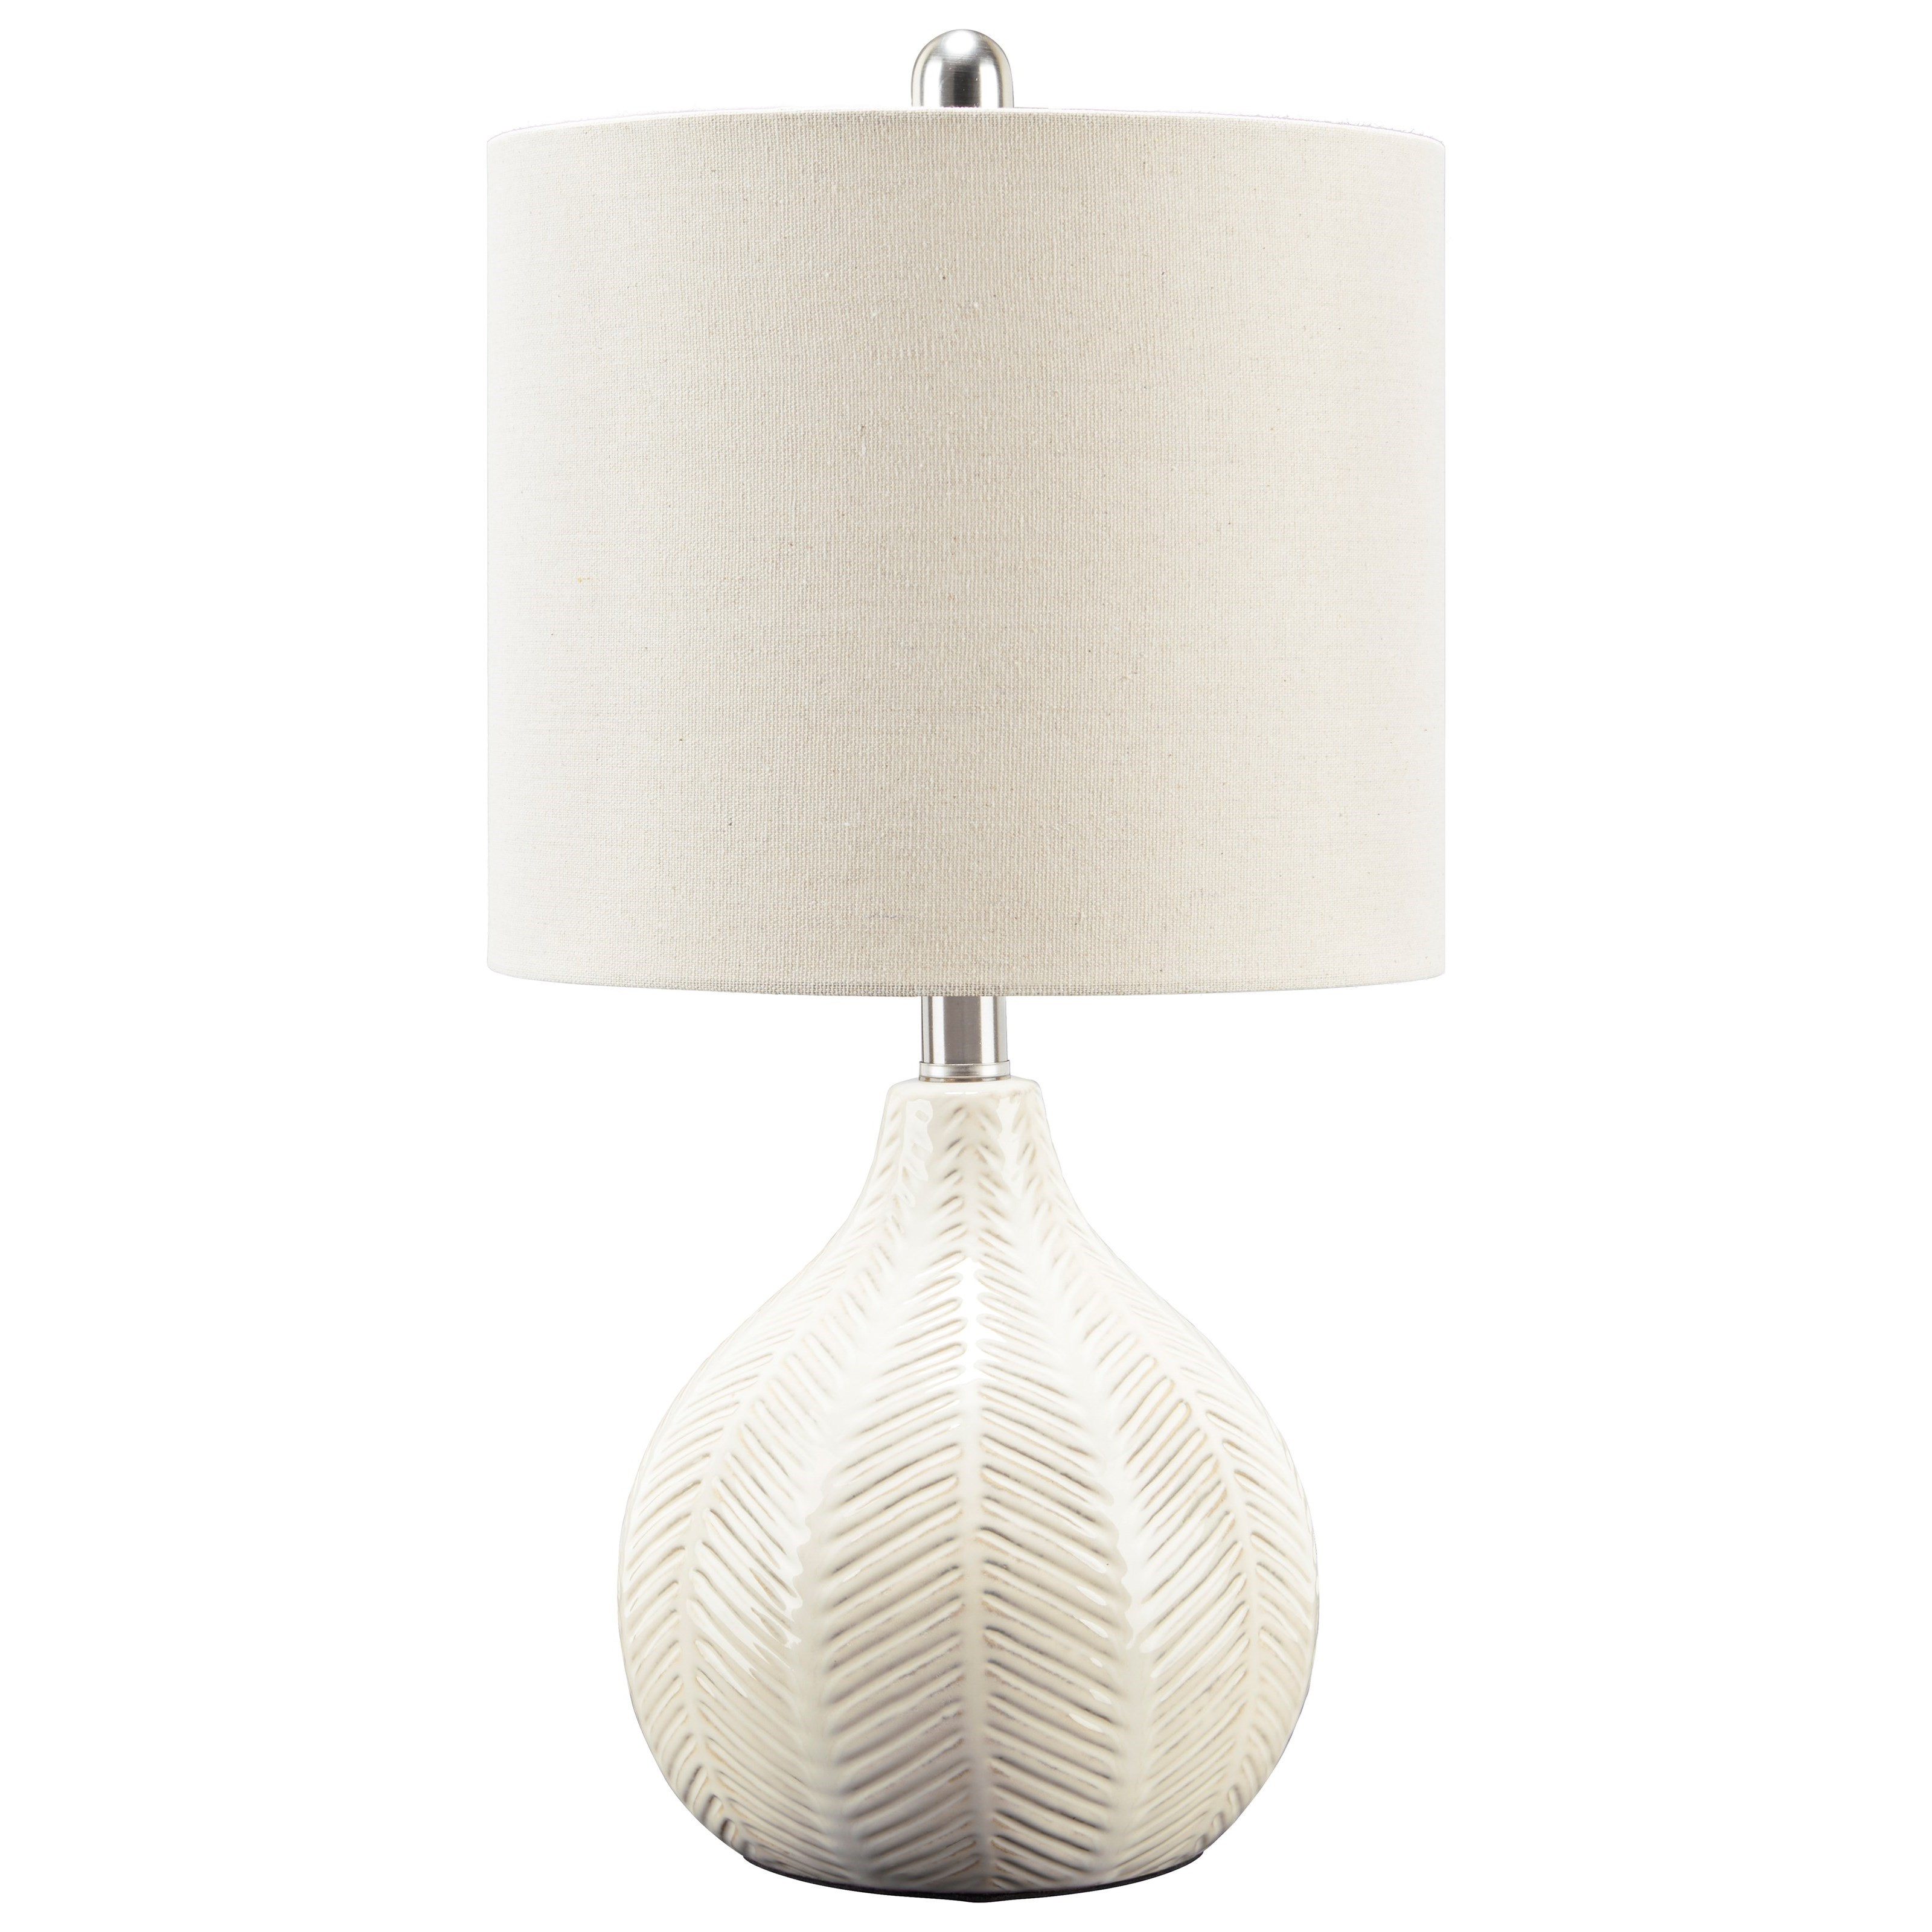 Lamps - Casual Rainermen Off White Table Lamp by Signature Design by Ashley at Furniture Barn